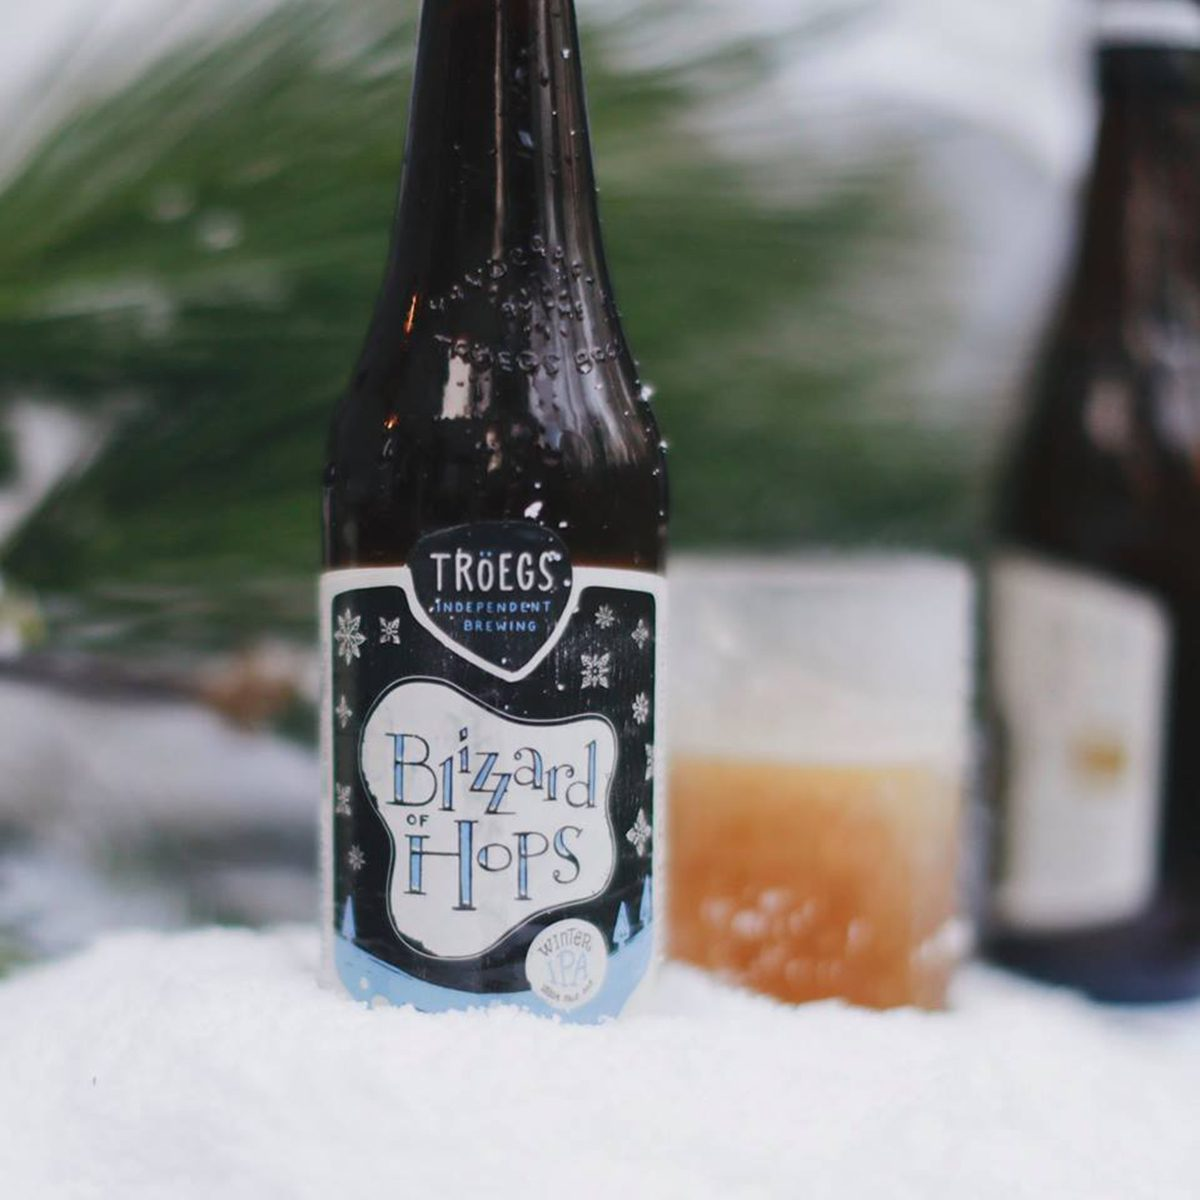 Tröegs Brewing's Blizzard of Hops